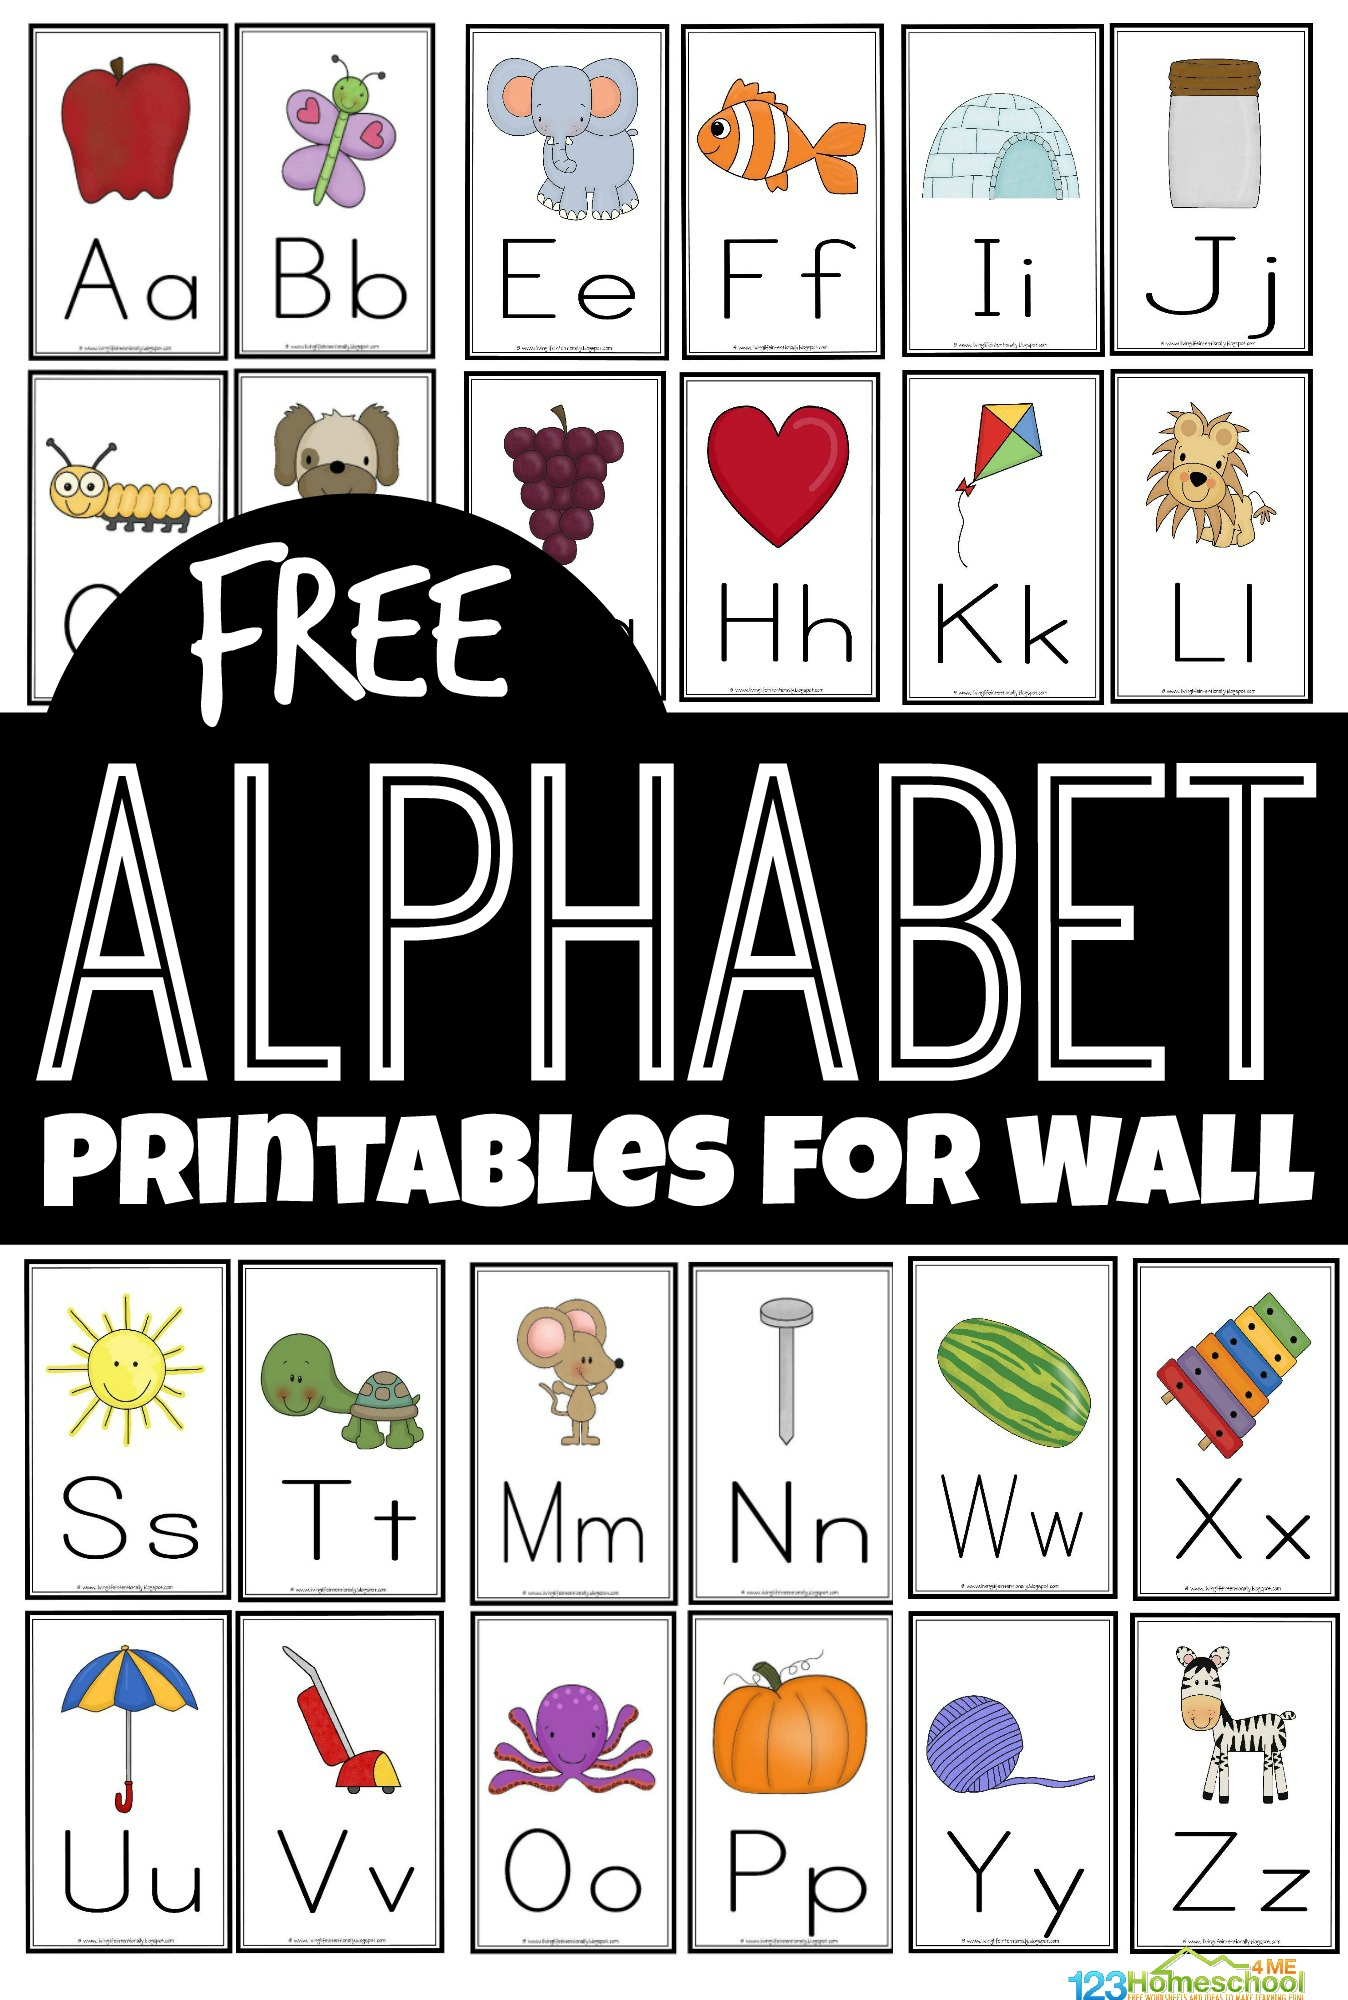 Free Free Alphabet Flashcards And Printables For Wall